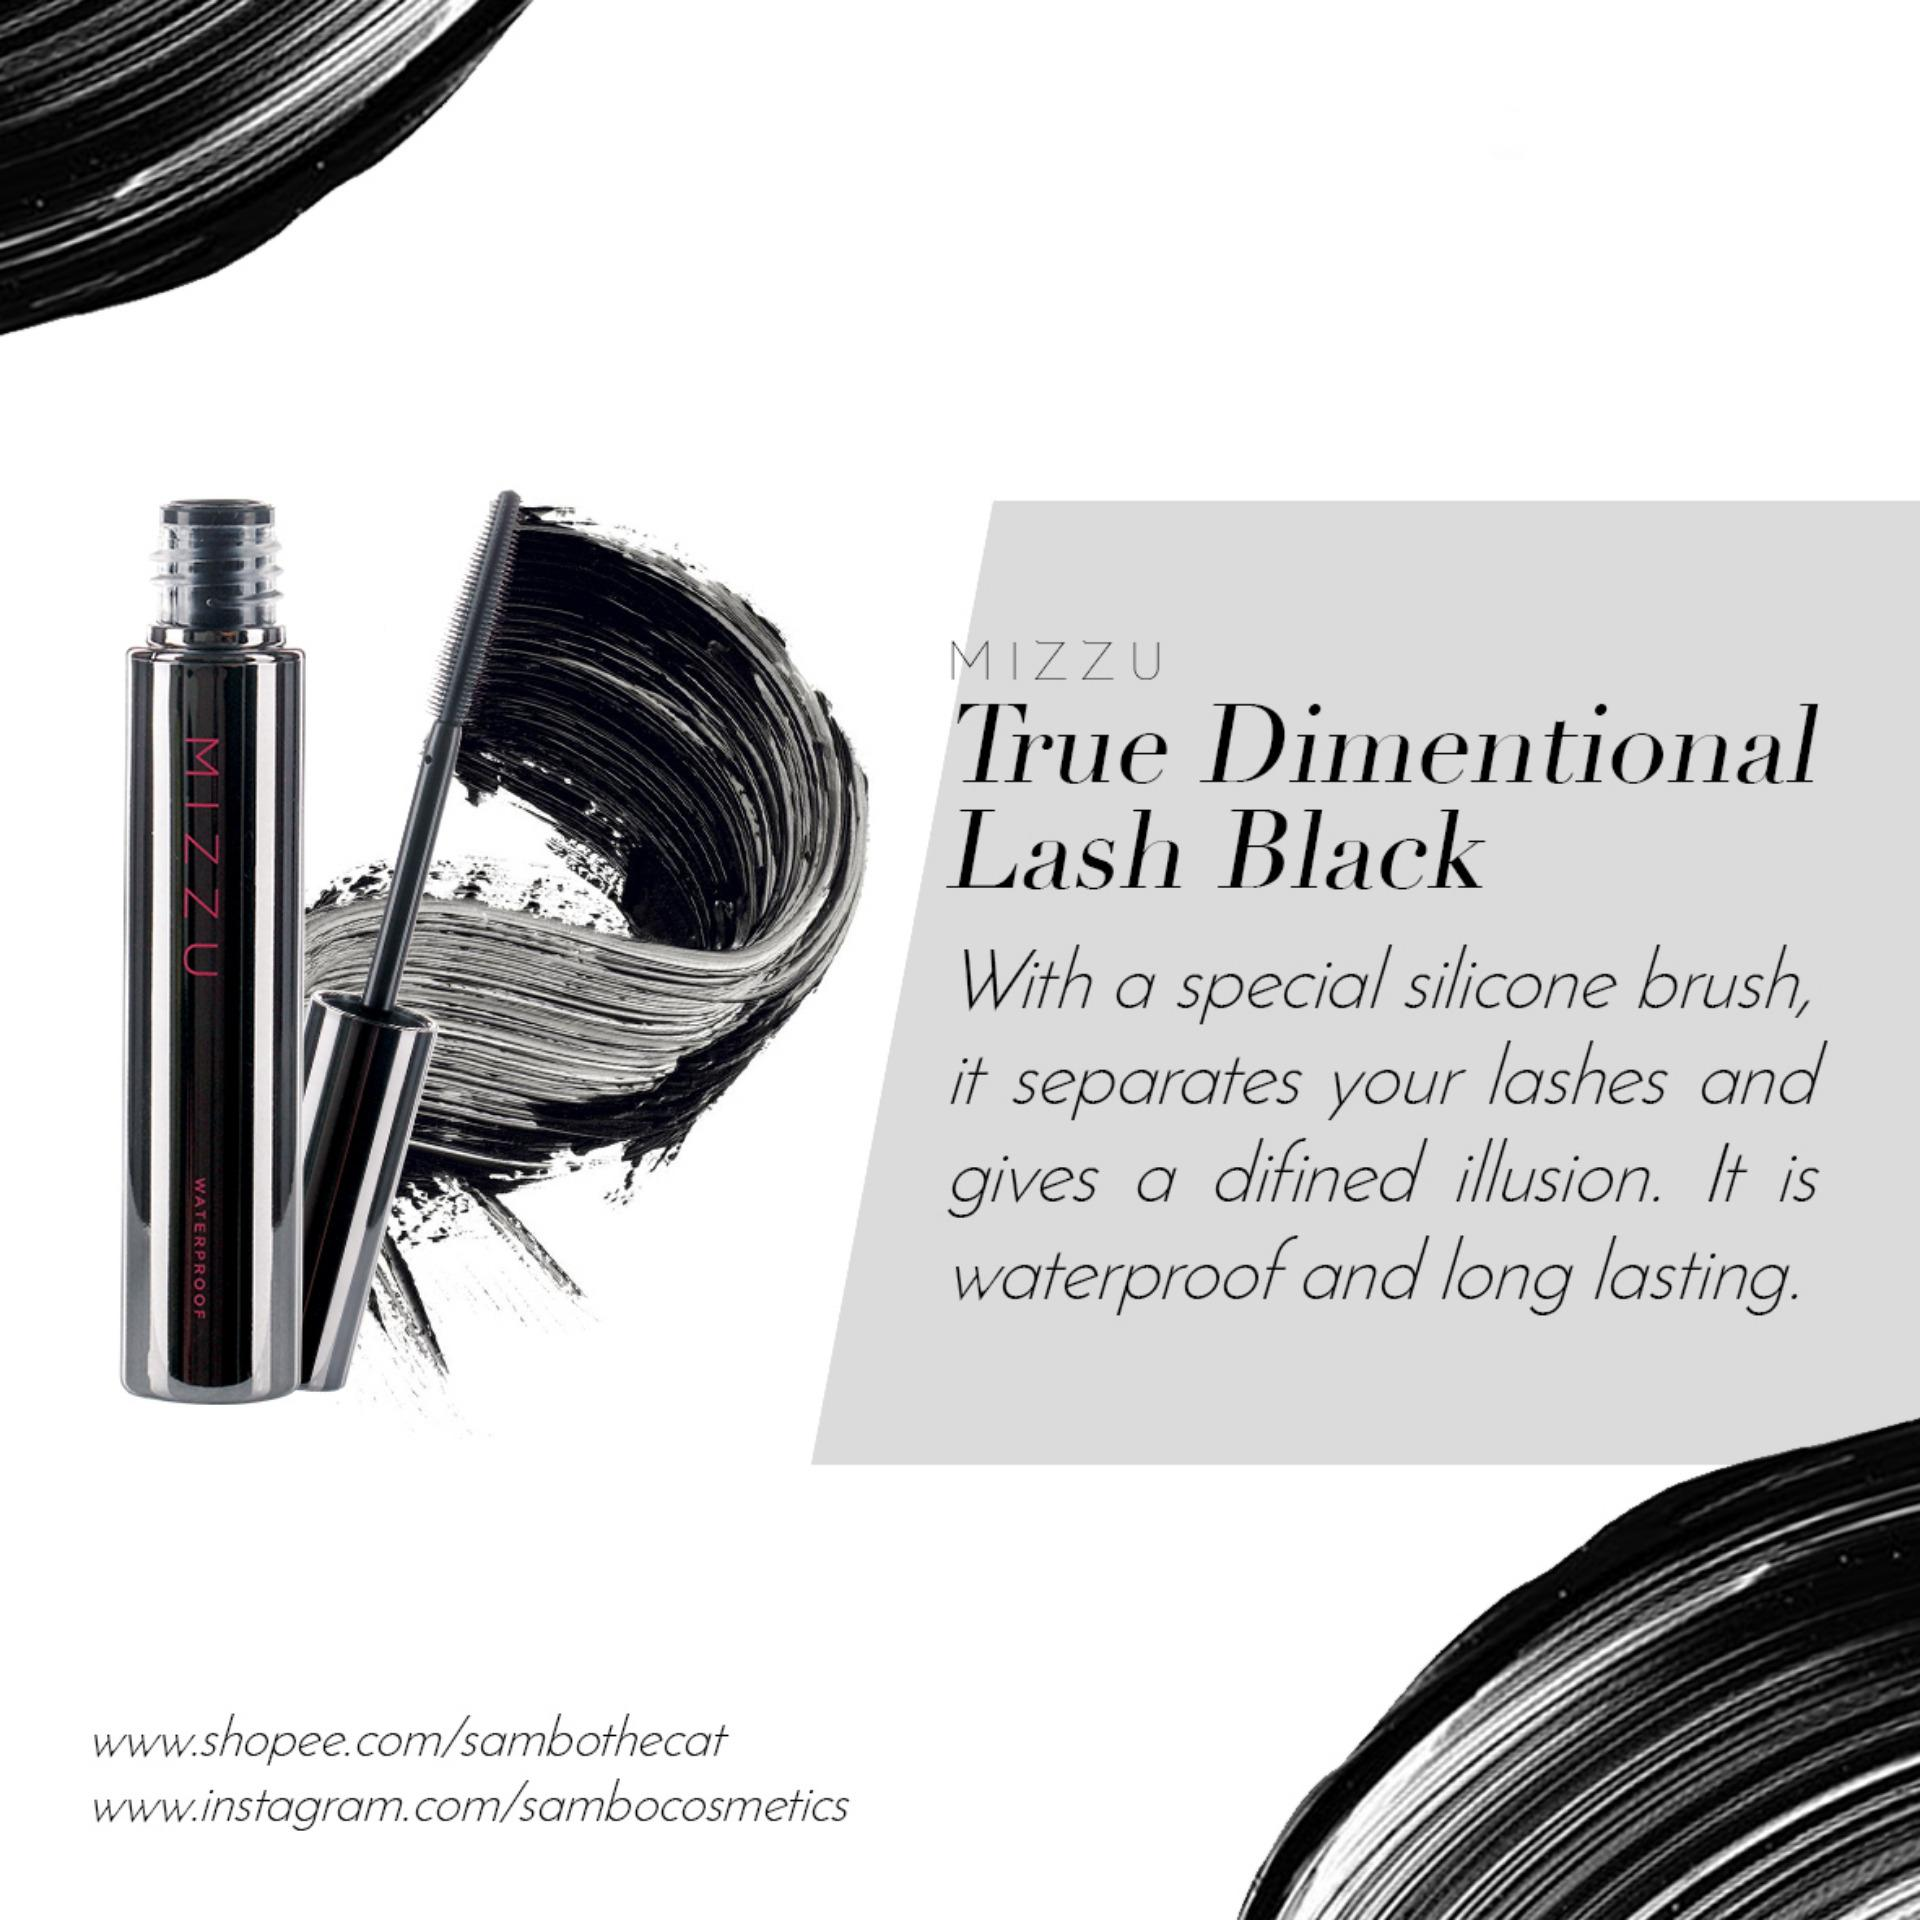 Kehebatan Mizzu True Dimensional Lash Black Waterproof Mascara Dan Loreal False Miss Manga Hitam